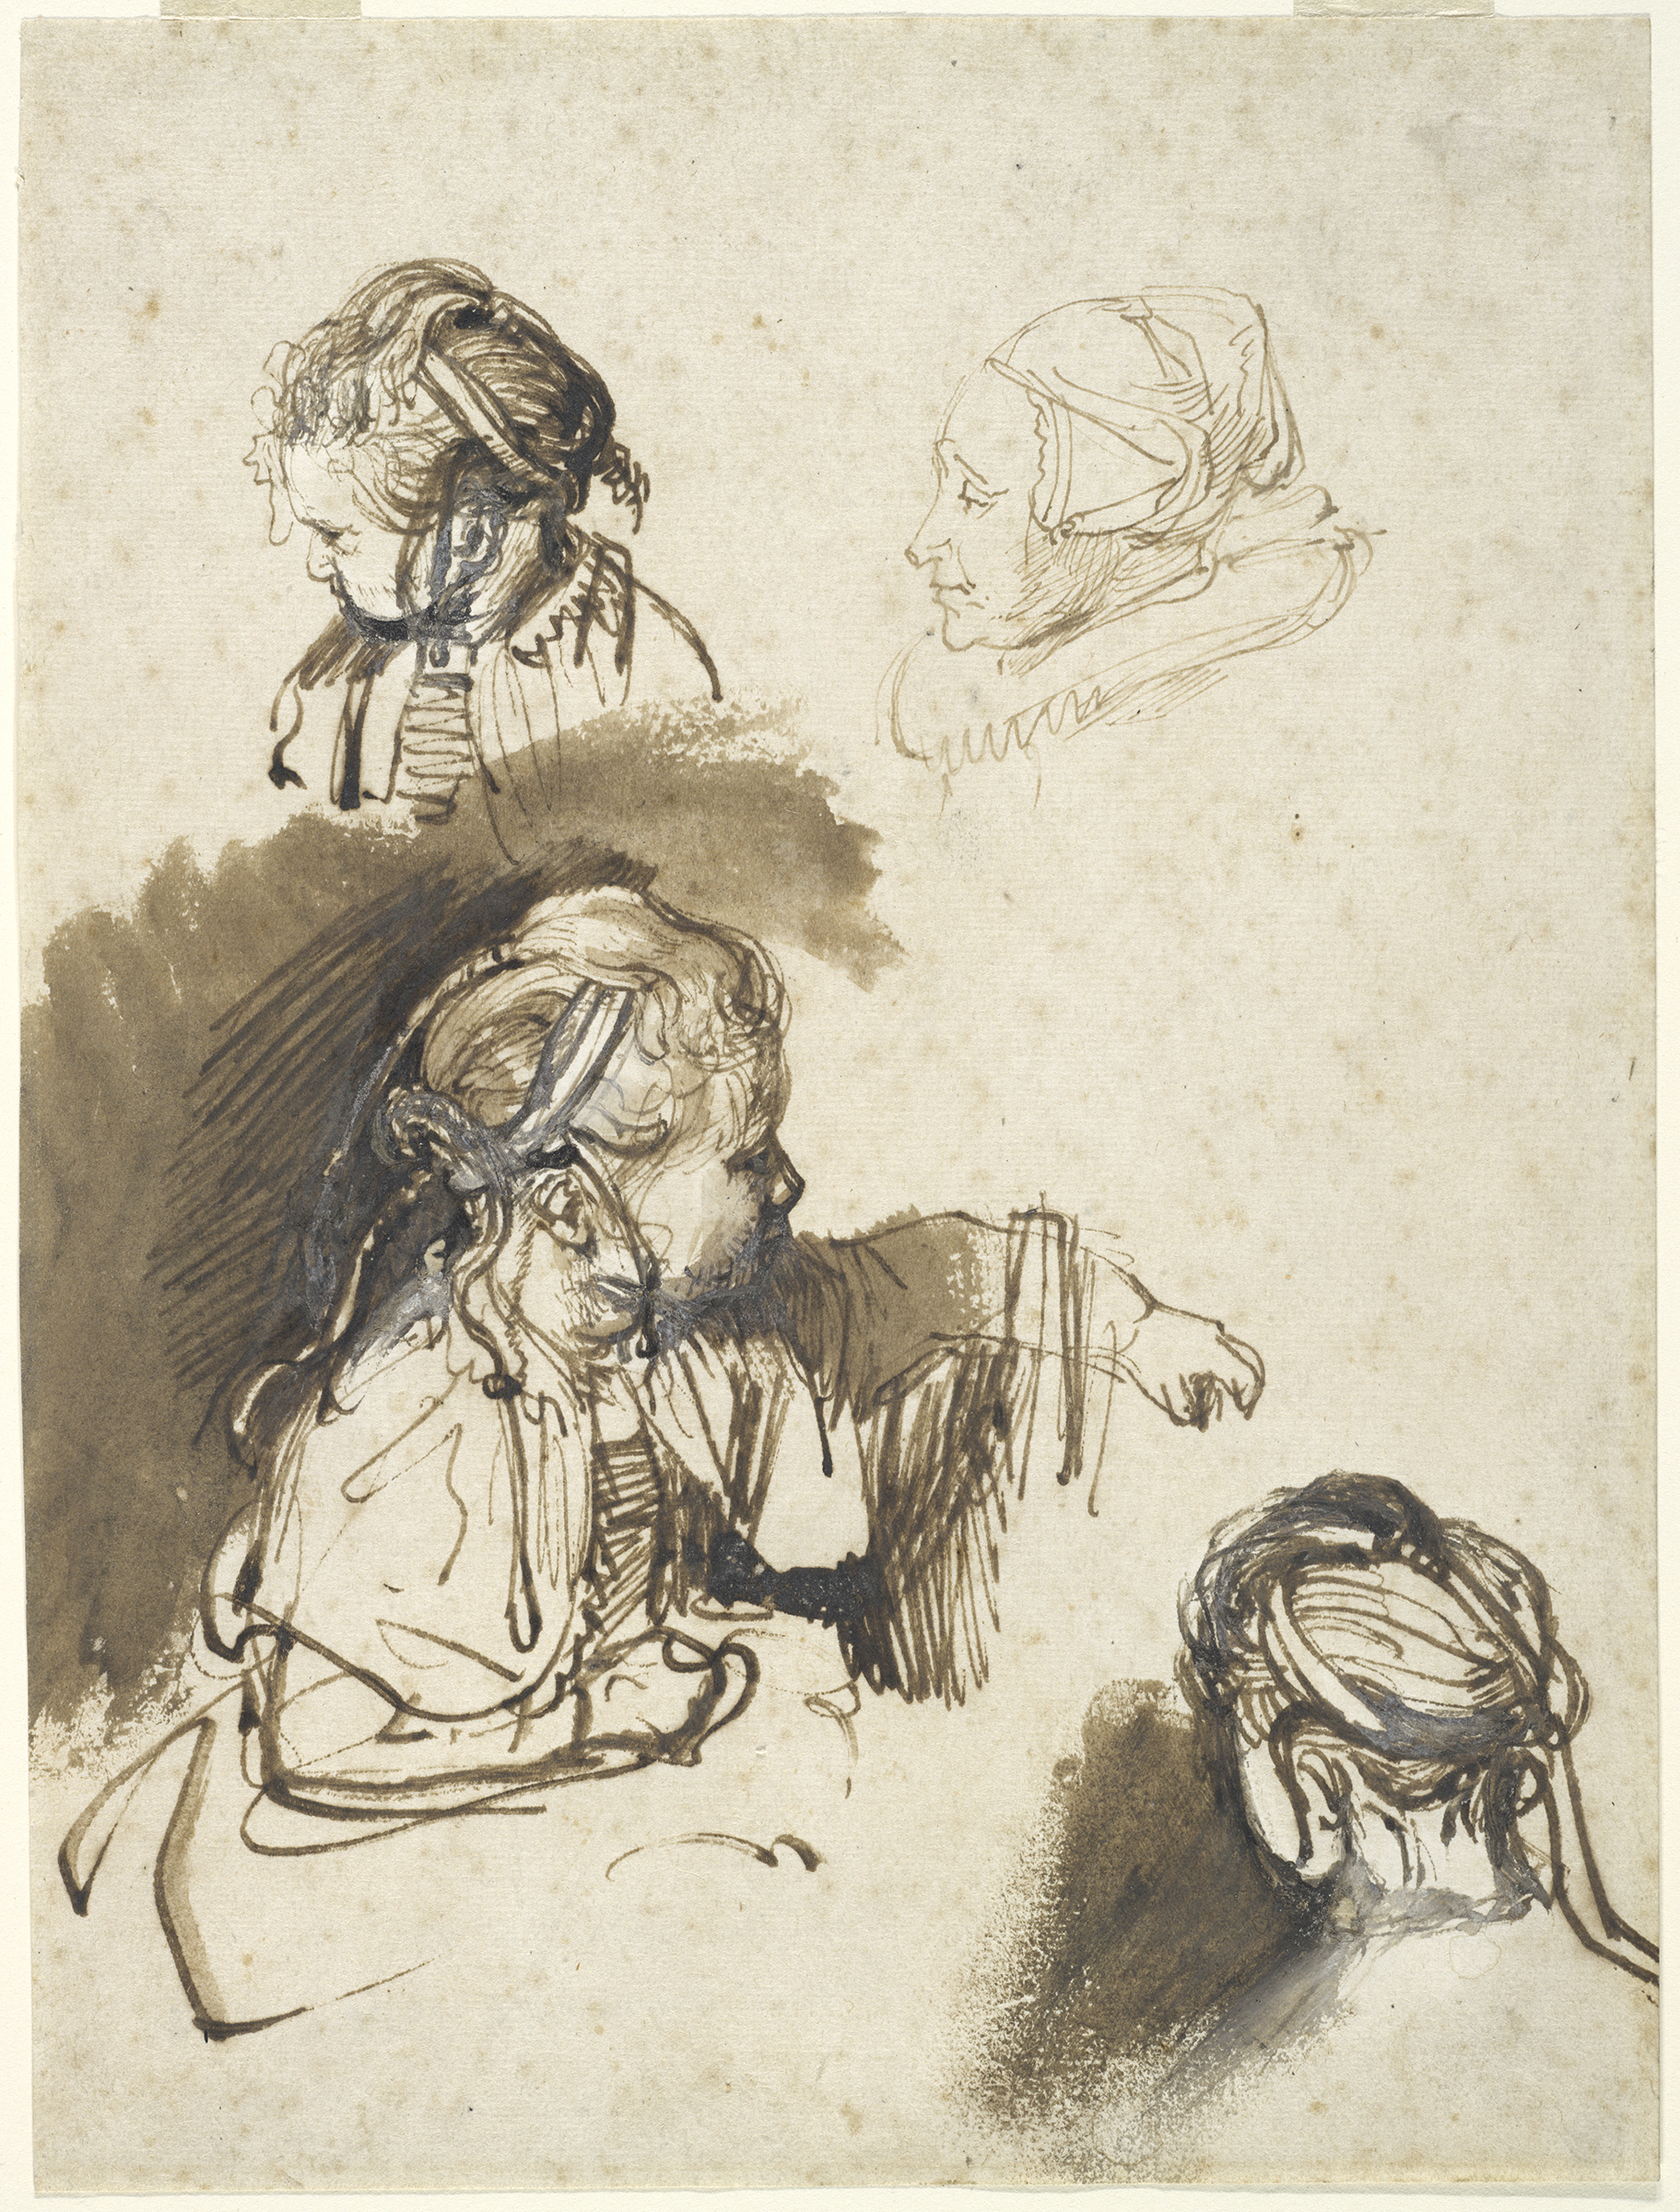 Rembrandt Harmensz. van Rijn, Three Studies of a Child and One of a Woman, c. 1638–40. Brown ink, brown wash, and white opaque watercolor. Harvard Art Museums/Fogg Museum, Gift of Meta and Paul J. Sachs, 1949.4. Photo: Harvard Art Museums, © President and Fellows of Harvard College.